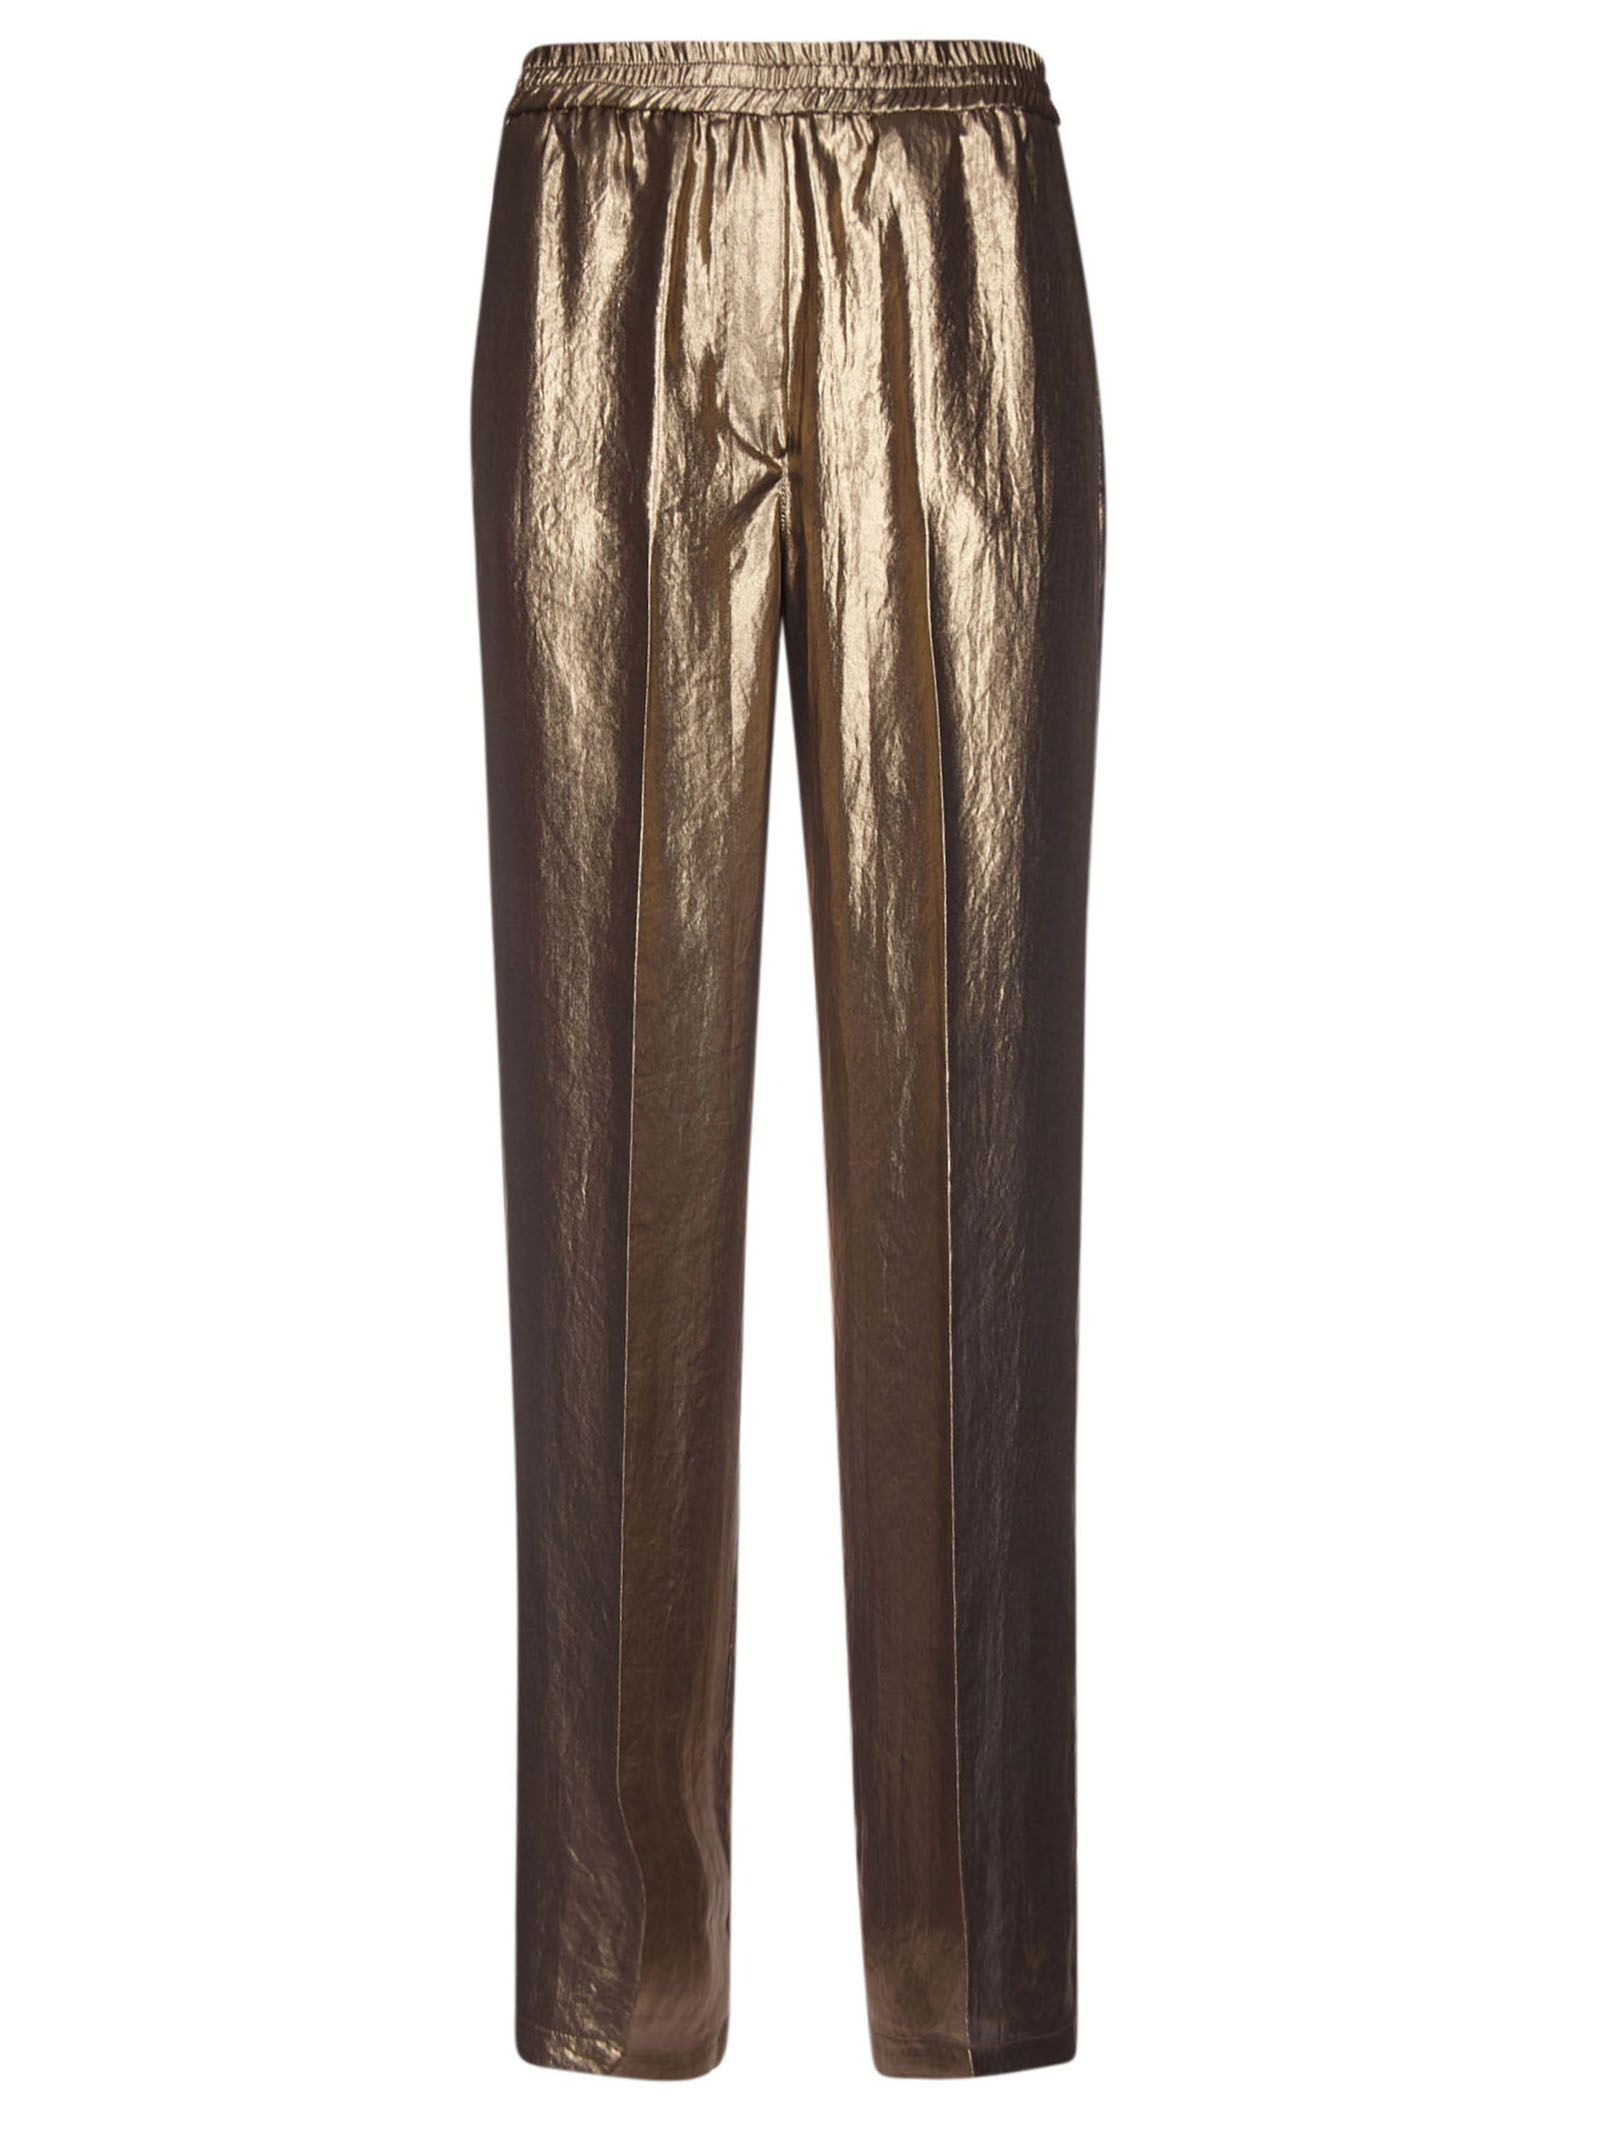 Kapoor Loose Trousers in Gold